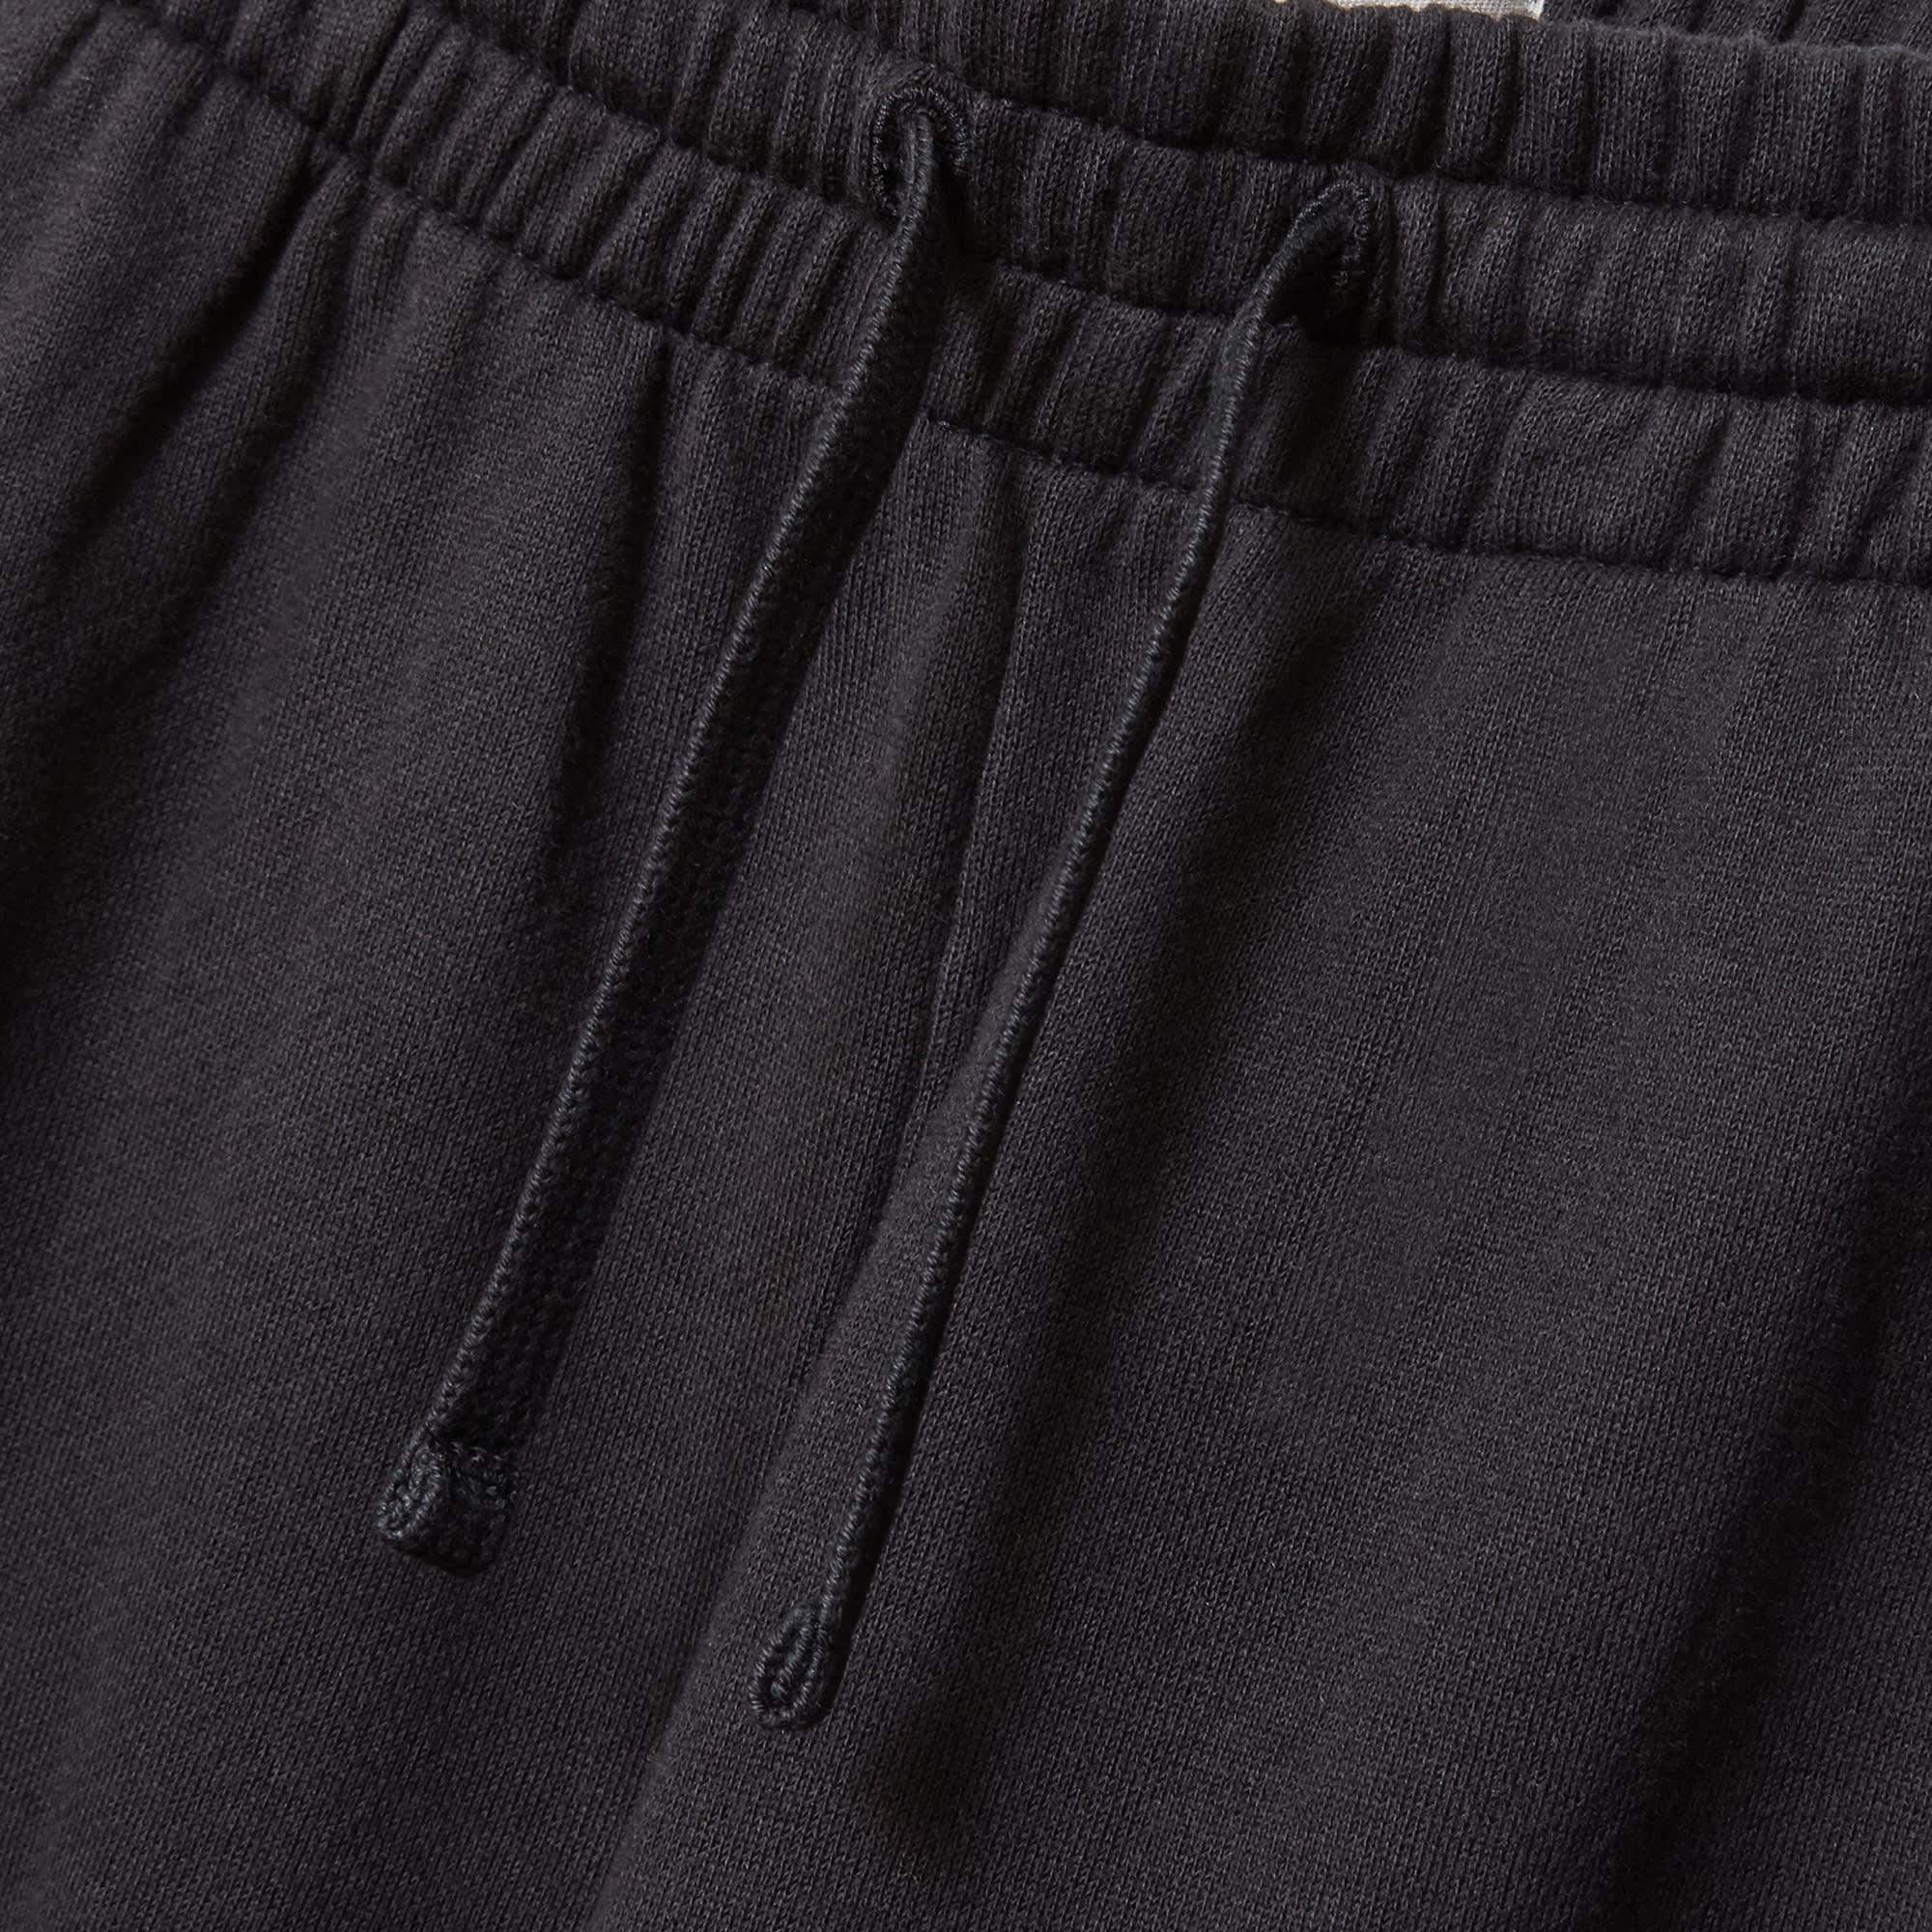 The Lightweight French Terry Jogger 4